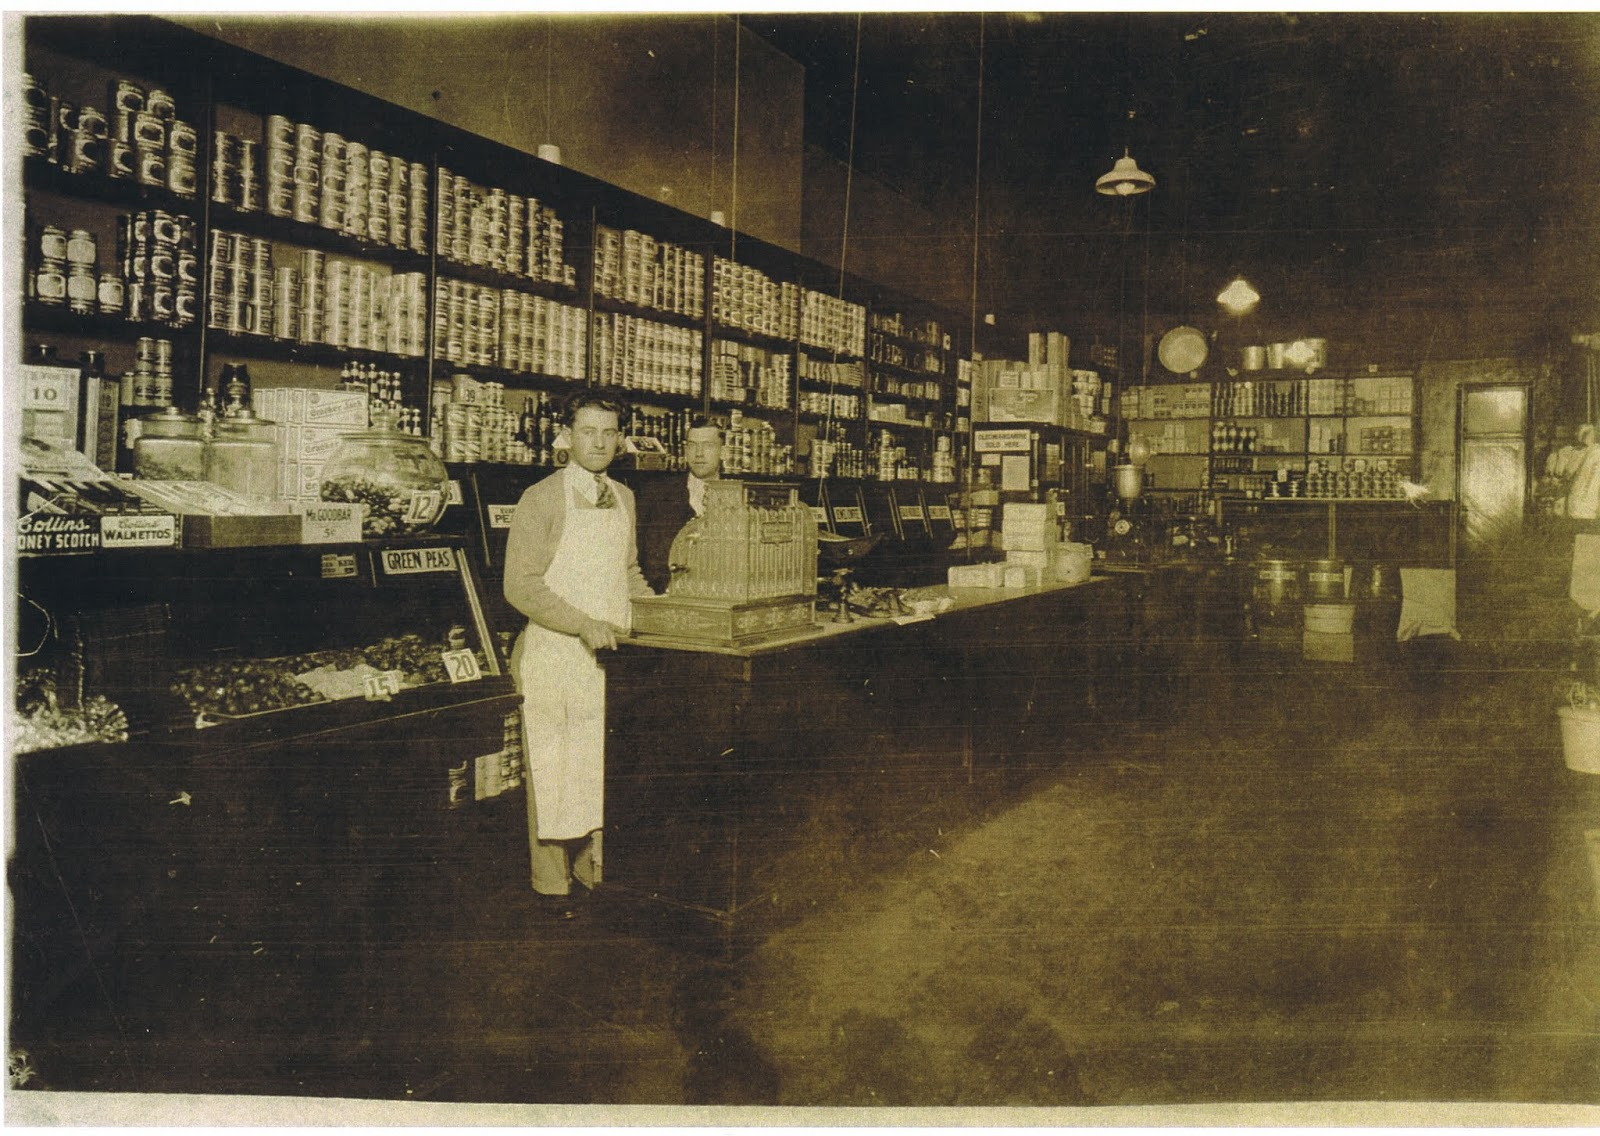 Kroger Store In New Vienna Ohio C1928 Homer Williams Mgr Image Courtesy Of Hayward Crone Via Mike Whited 1931 Gleason Streber Opened His Own Grocery